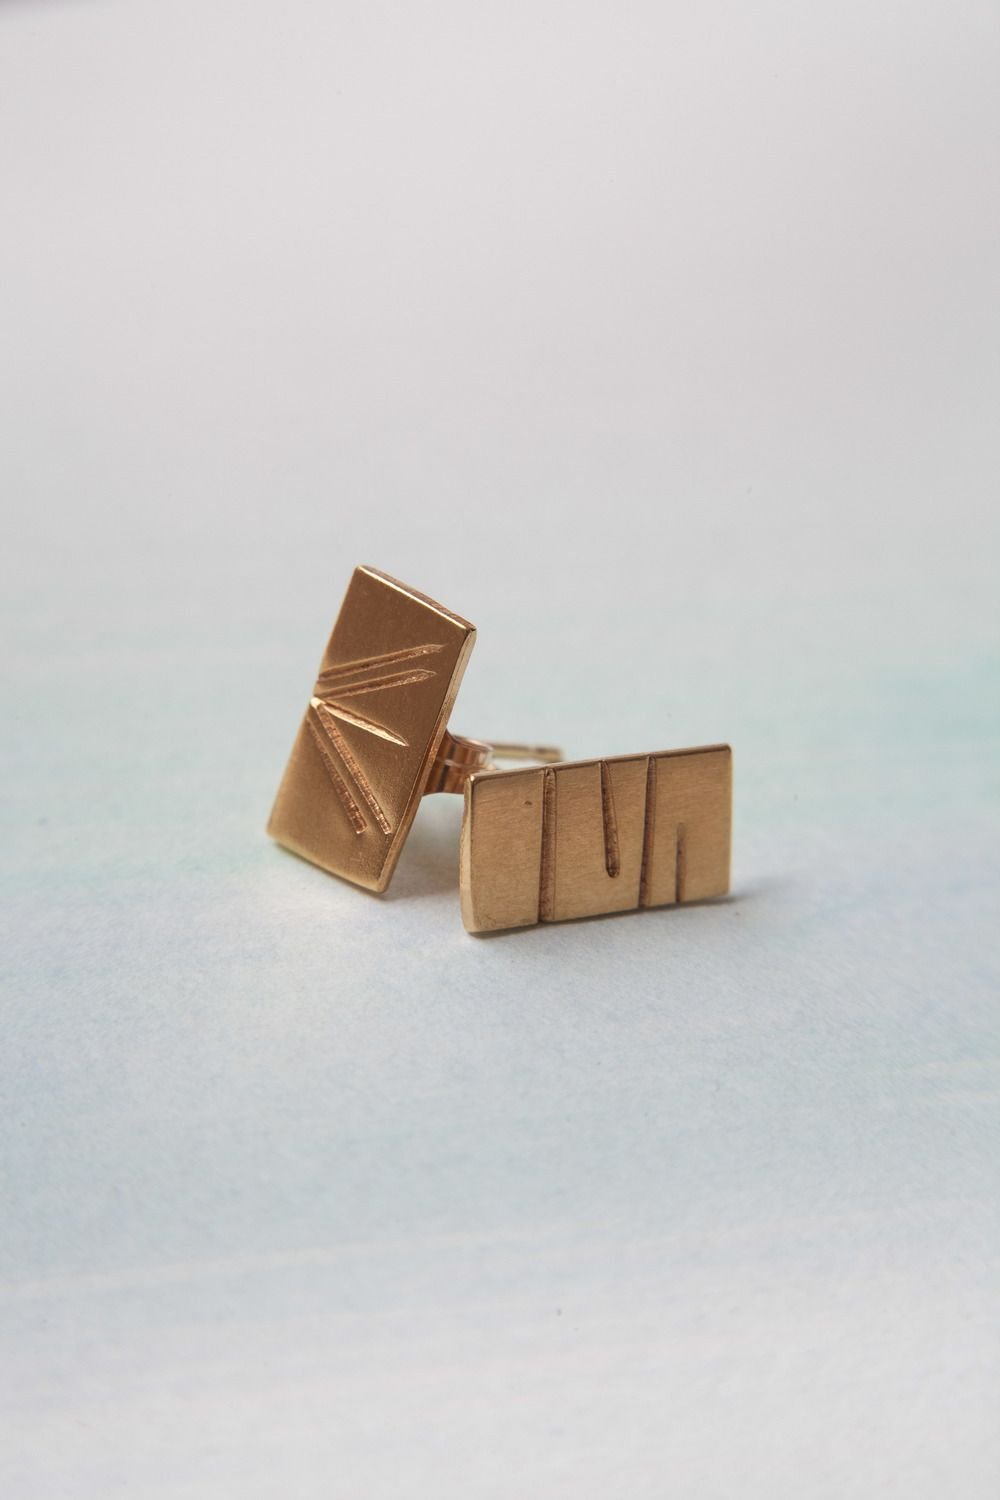 Stamped Studs In Desert Gold: $60